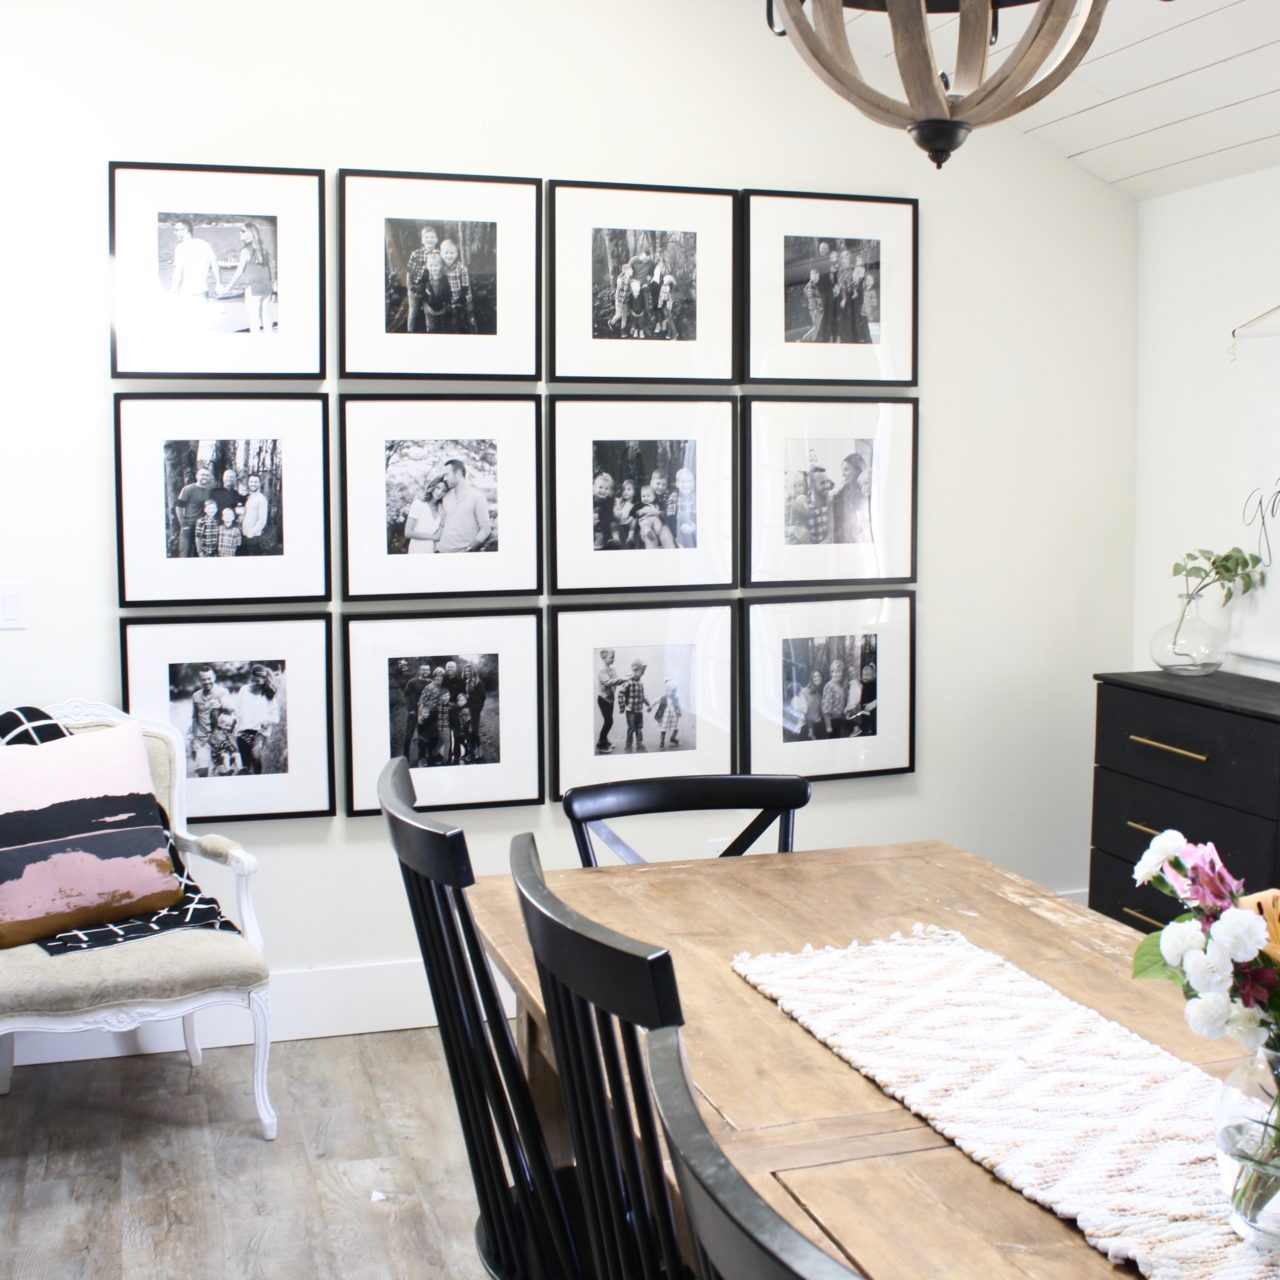 Creating Home: Gallery Wall In the Dining Room